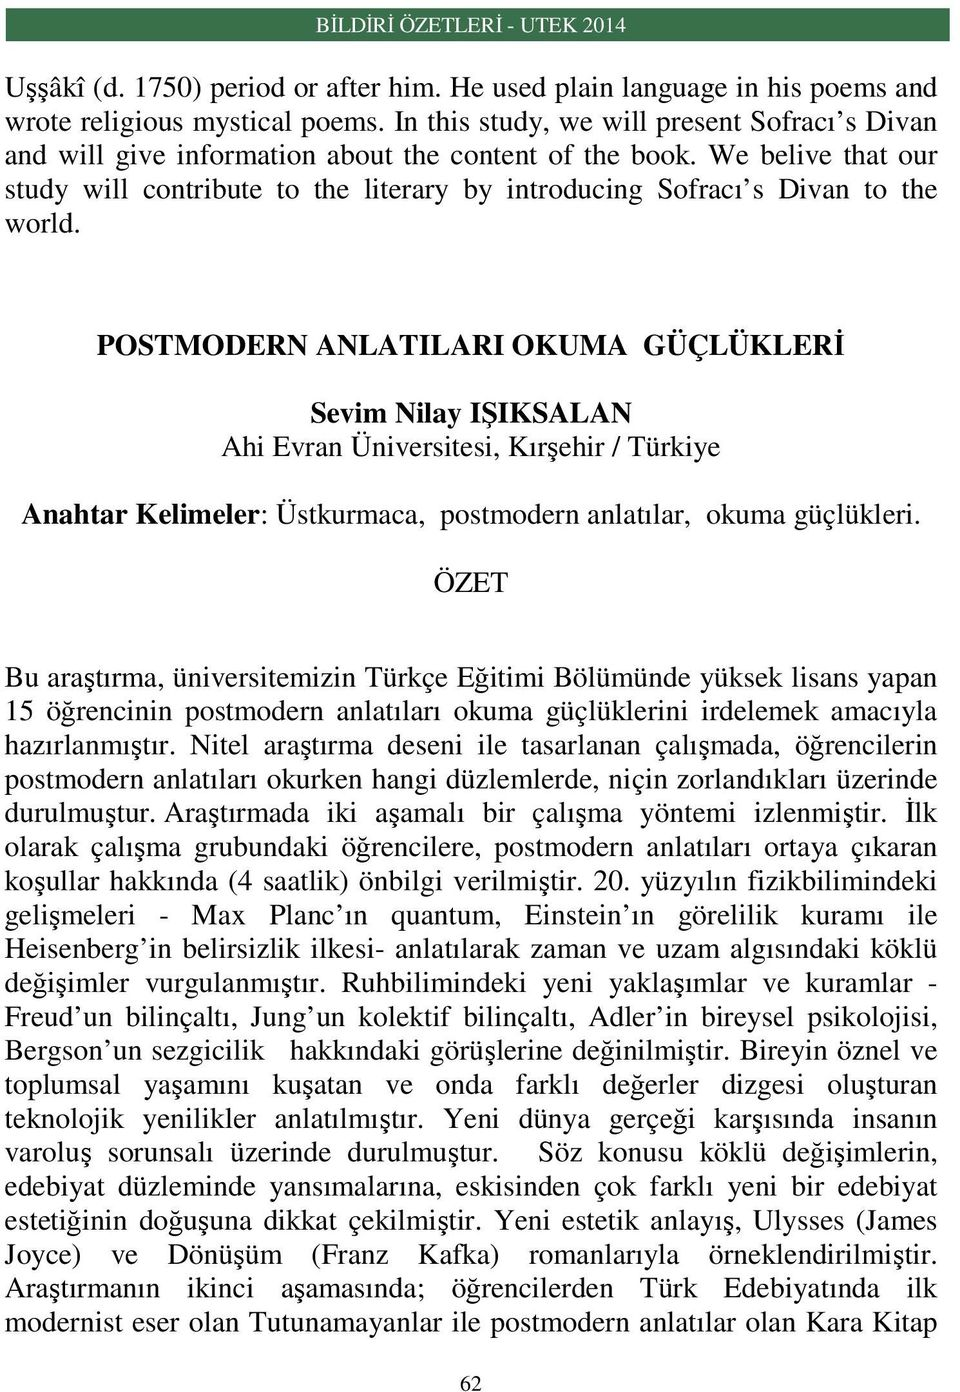 We belive that our study will contribute to the literary by introducing Sofracı s Divan to the world.